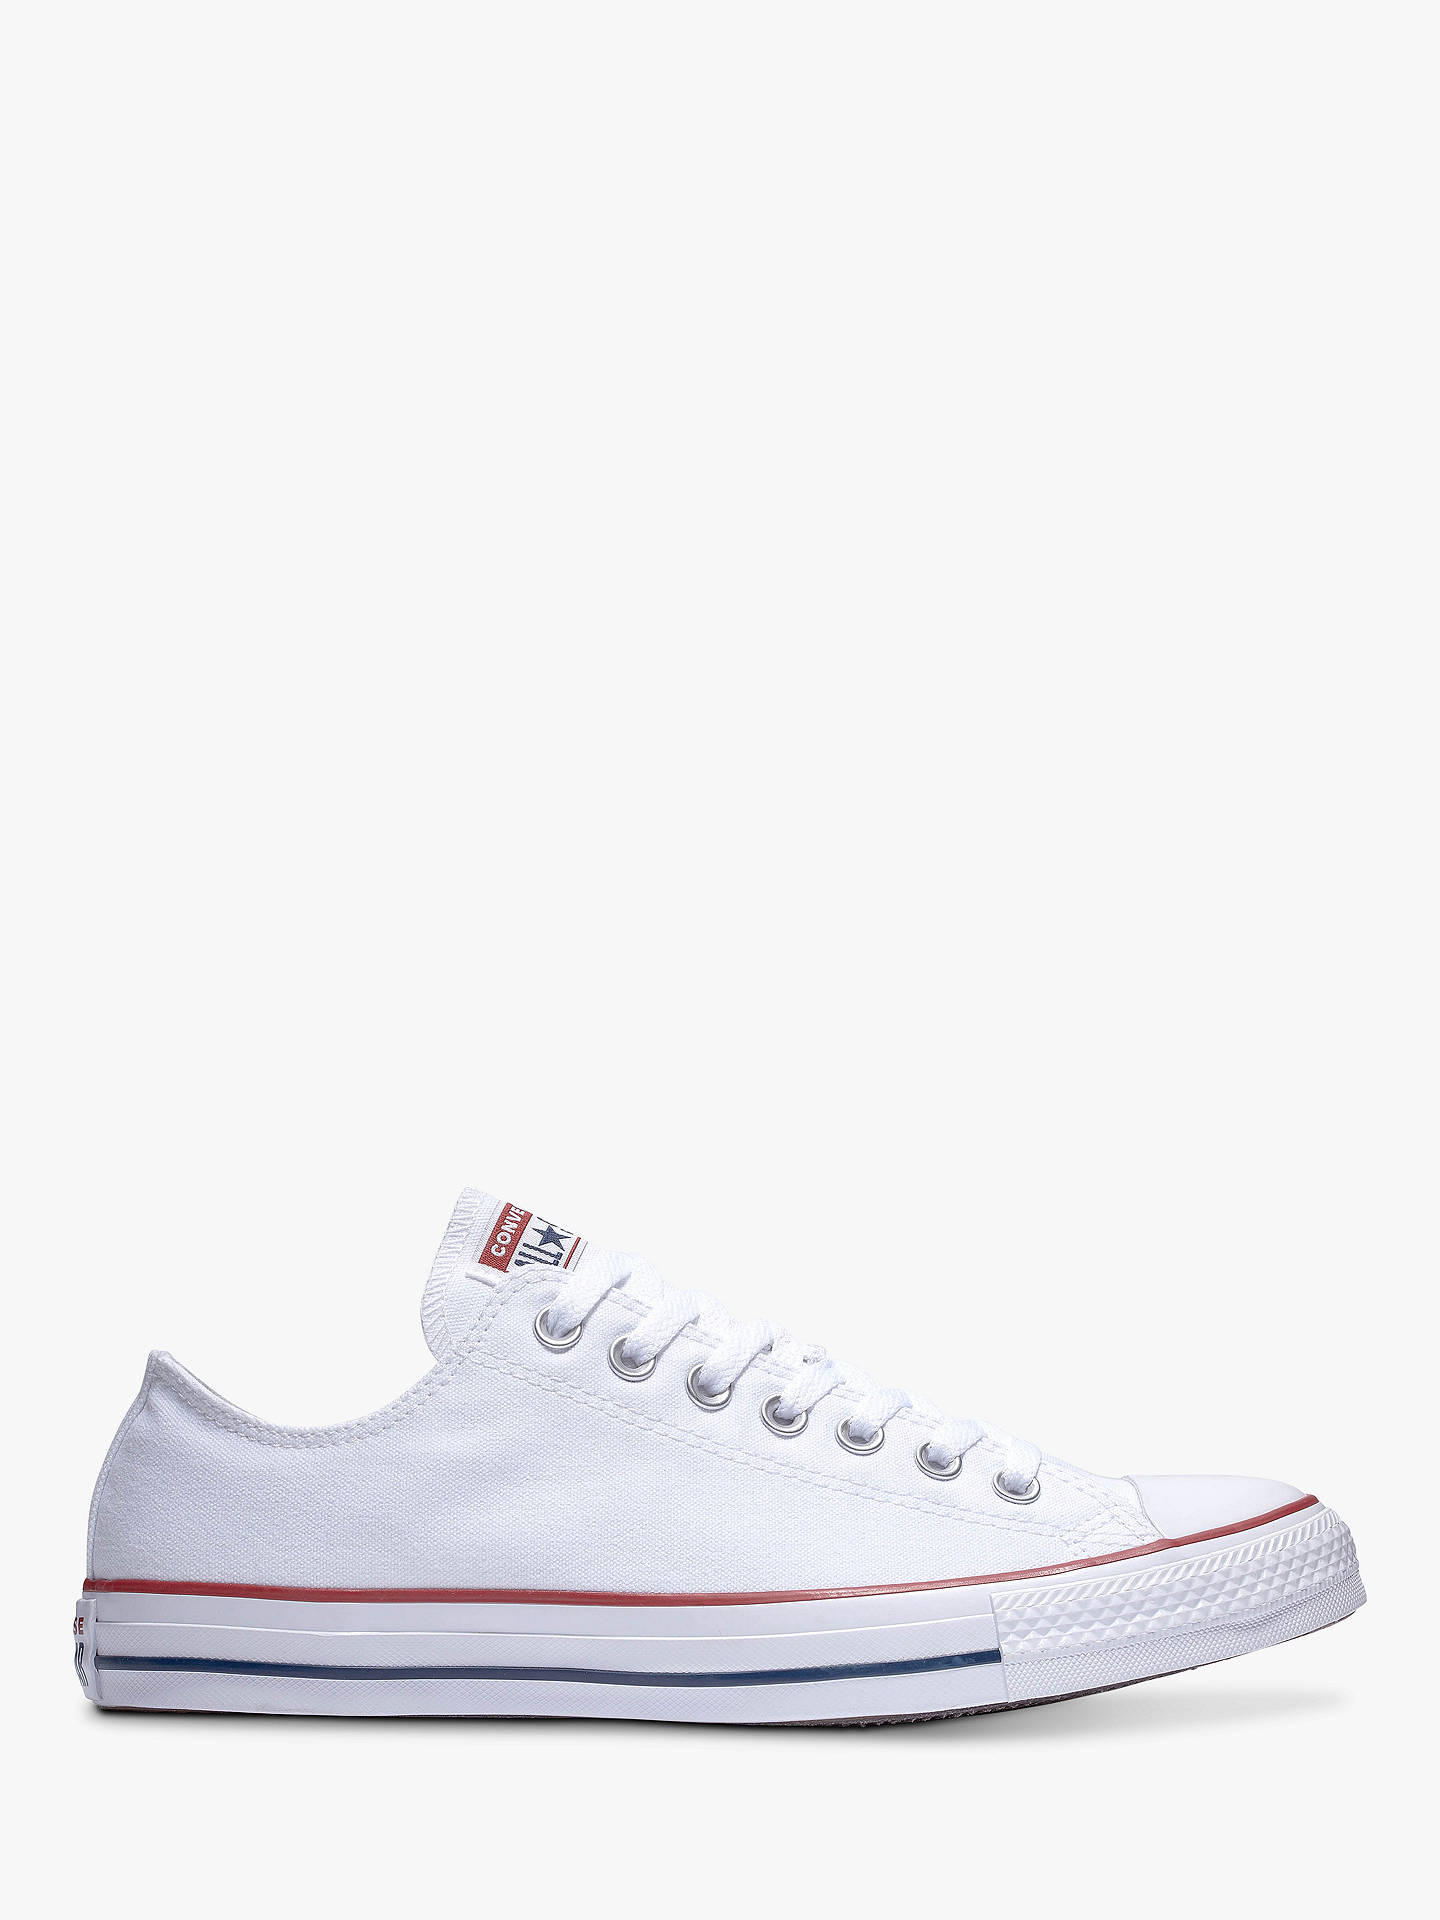 Converse Chuck Taylor All Star Canvas Ox Low-Top Trainers at John ... fb0cbf230